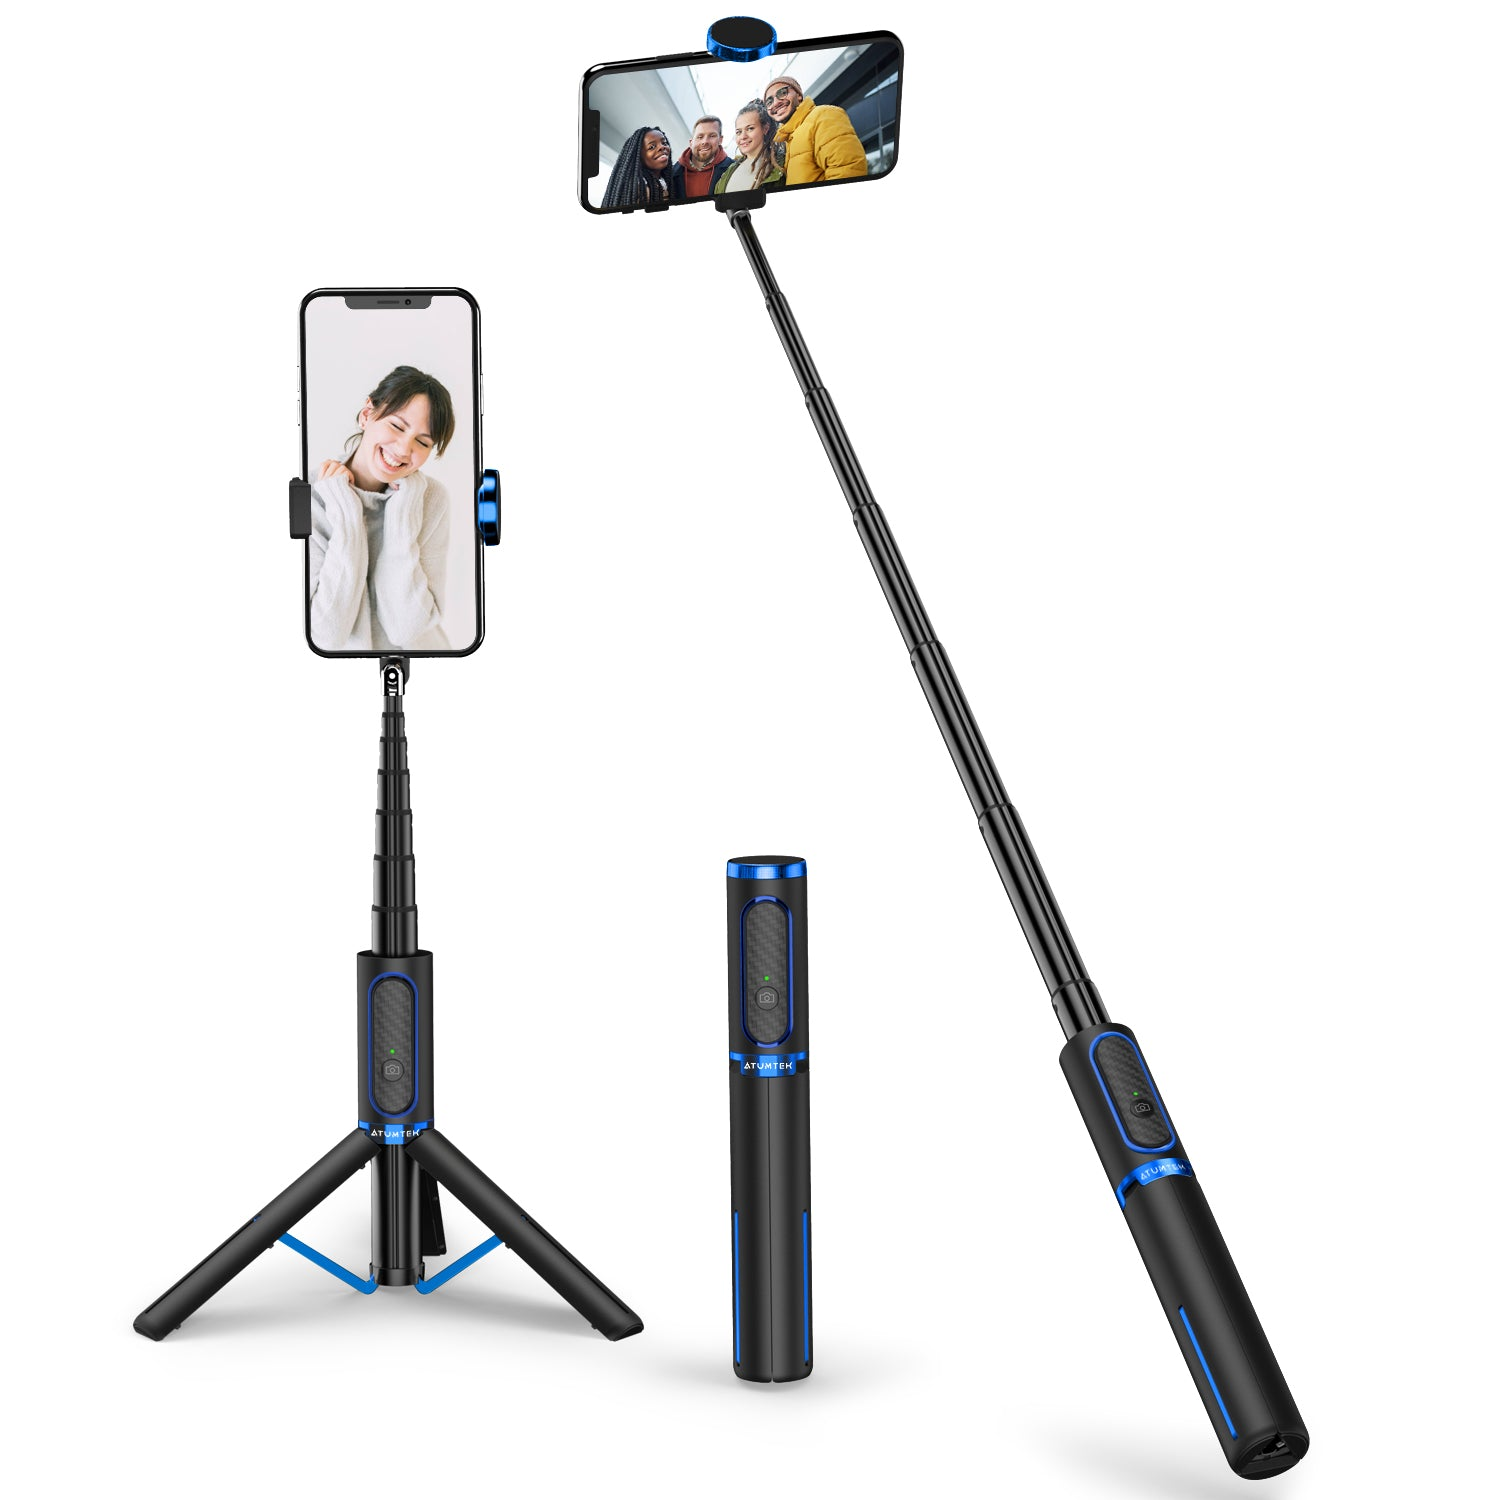 3 in 1 Bluetooth Selfie Stick Tripod with Wireless Remote